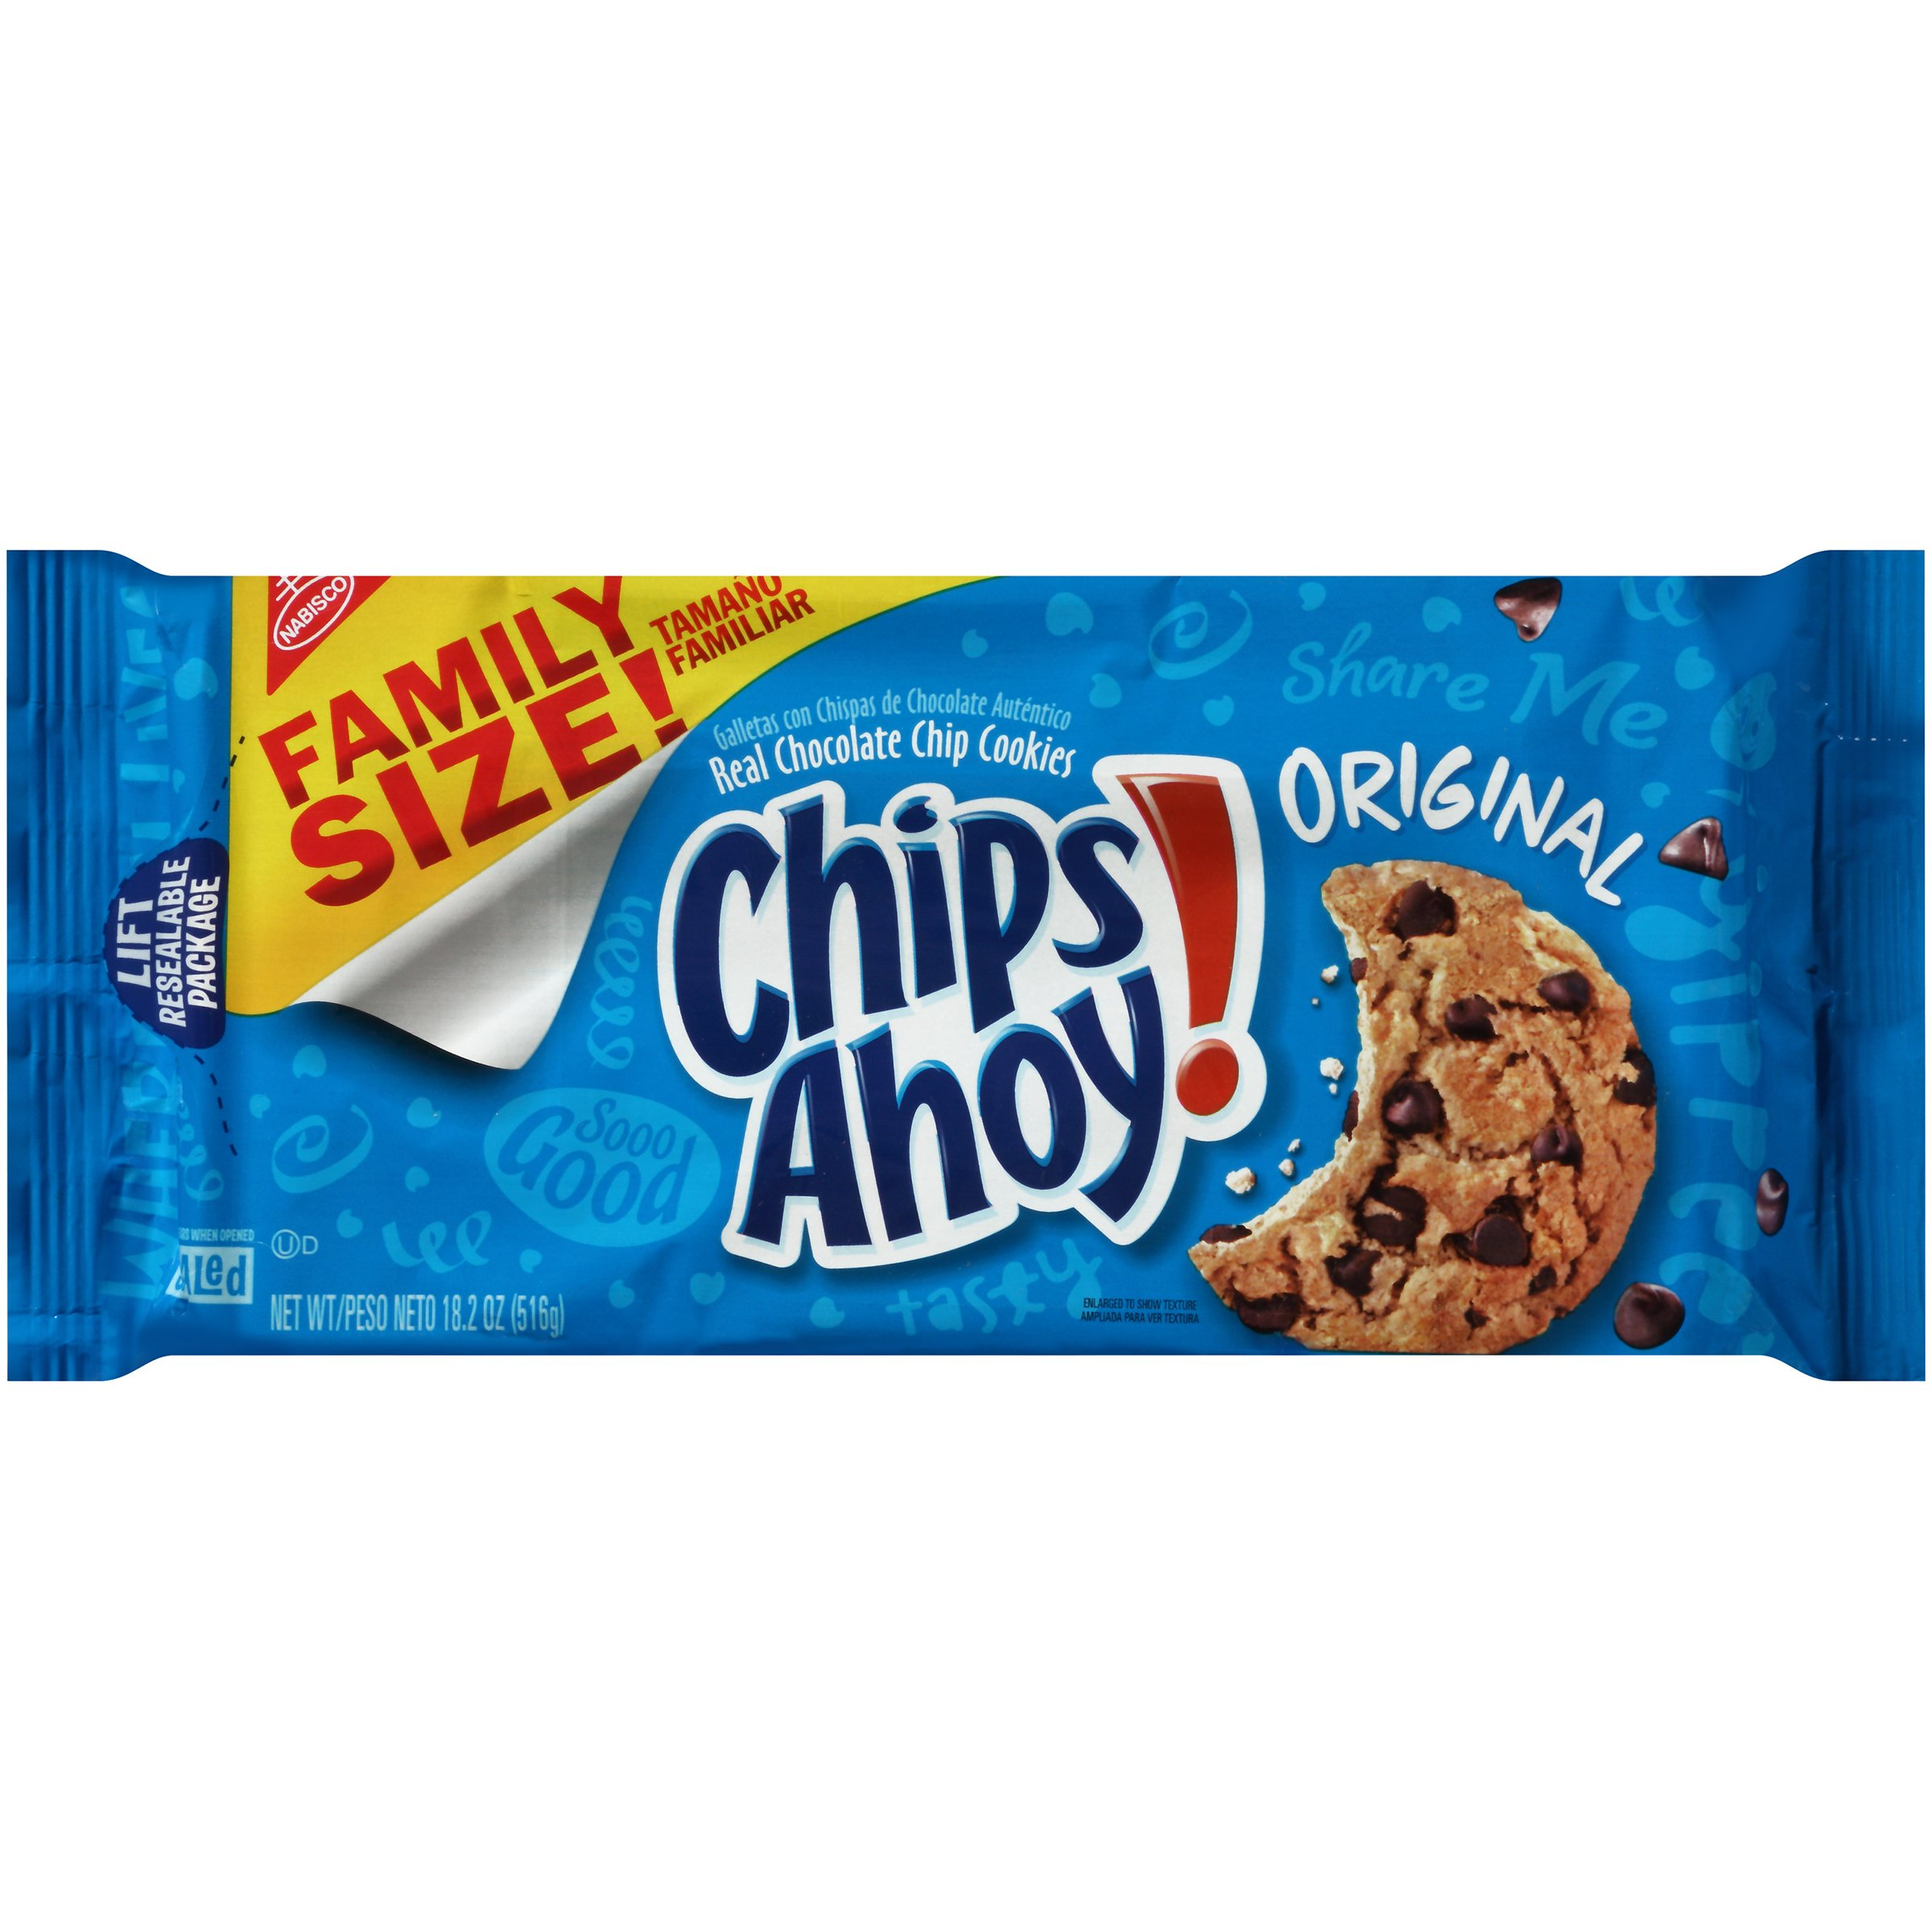 Chips Ahoy! Original Chocolate Chip Cookies - Family Size, 18.2 Ounce (Pack of 6) by Chips Ahoy!